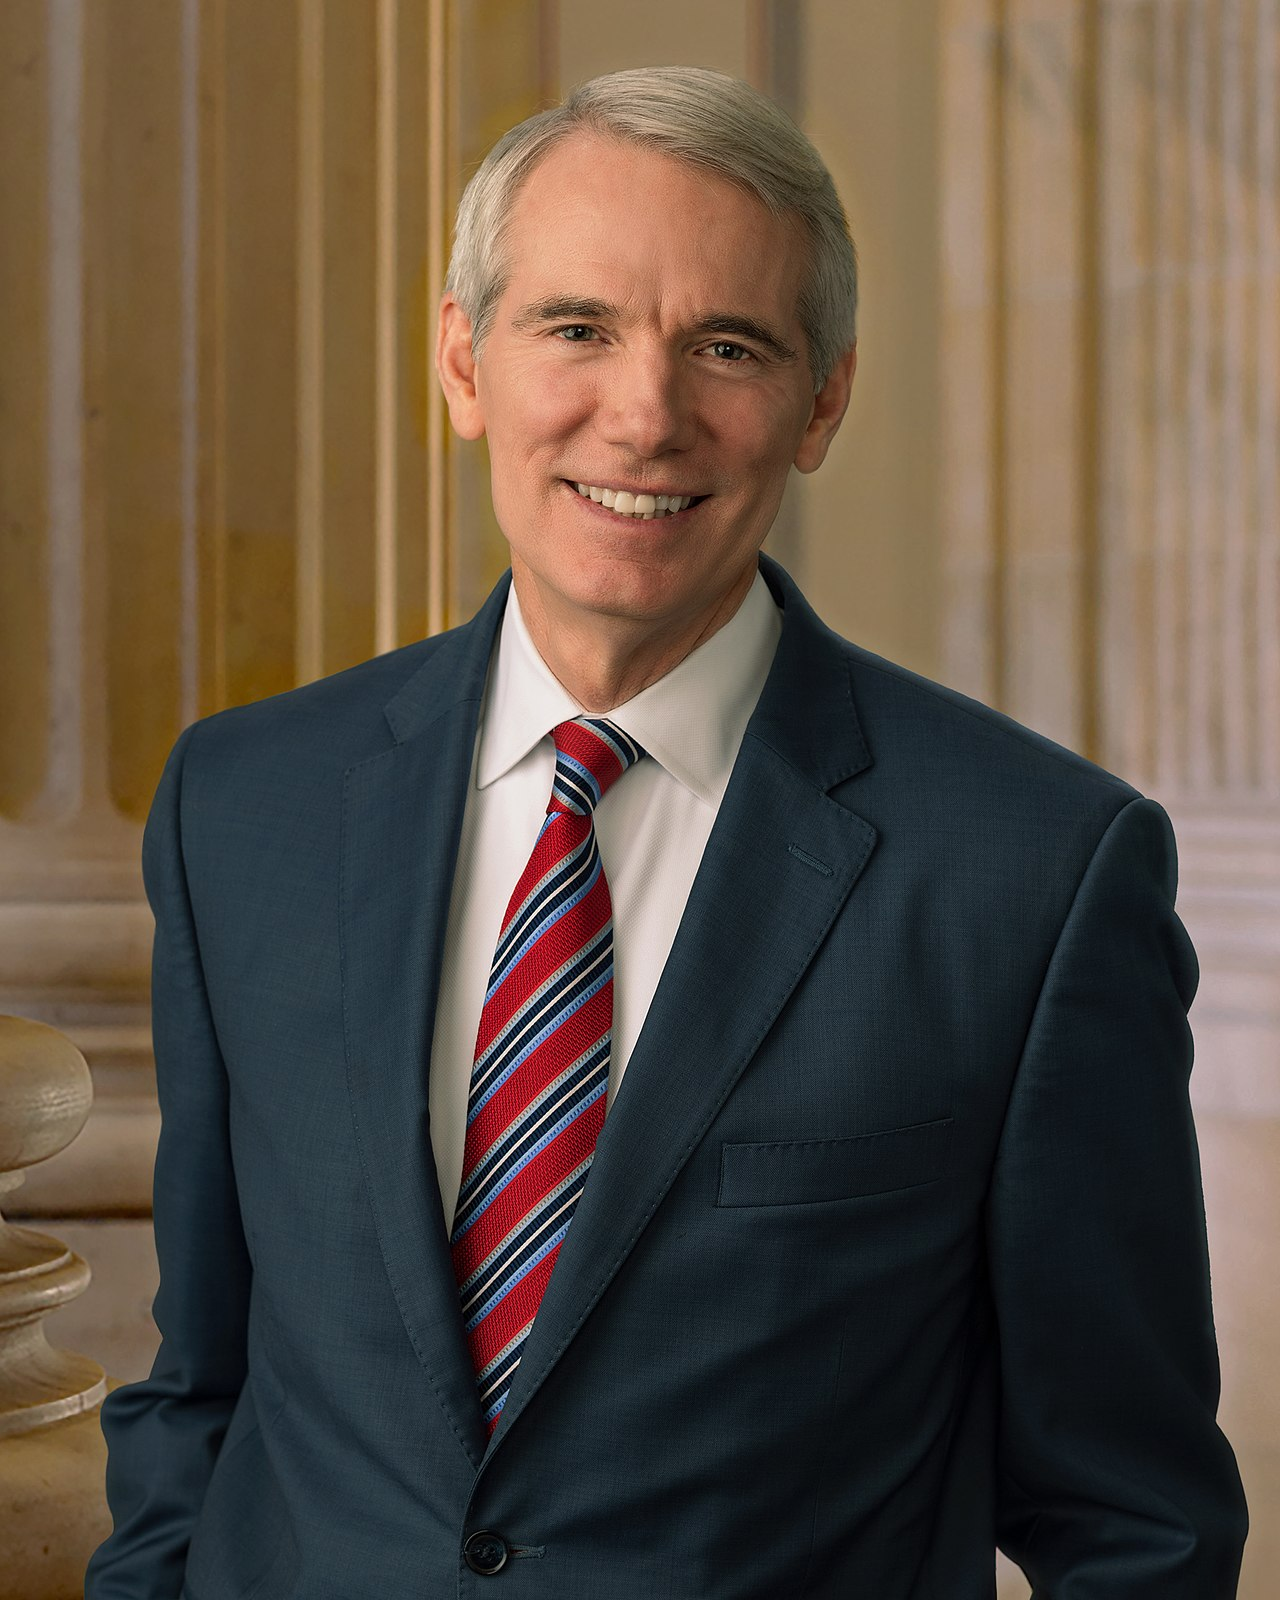 The Honorable Rob Portman (R-OH) 2019